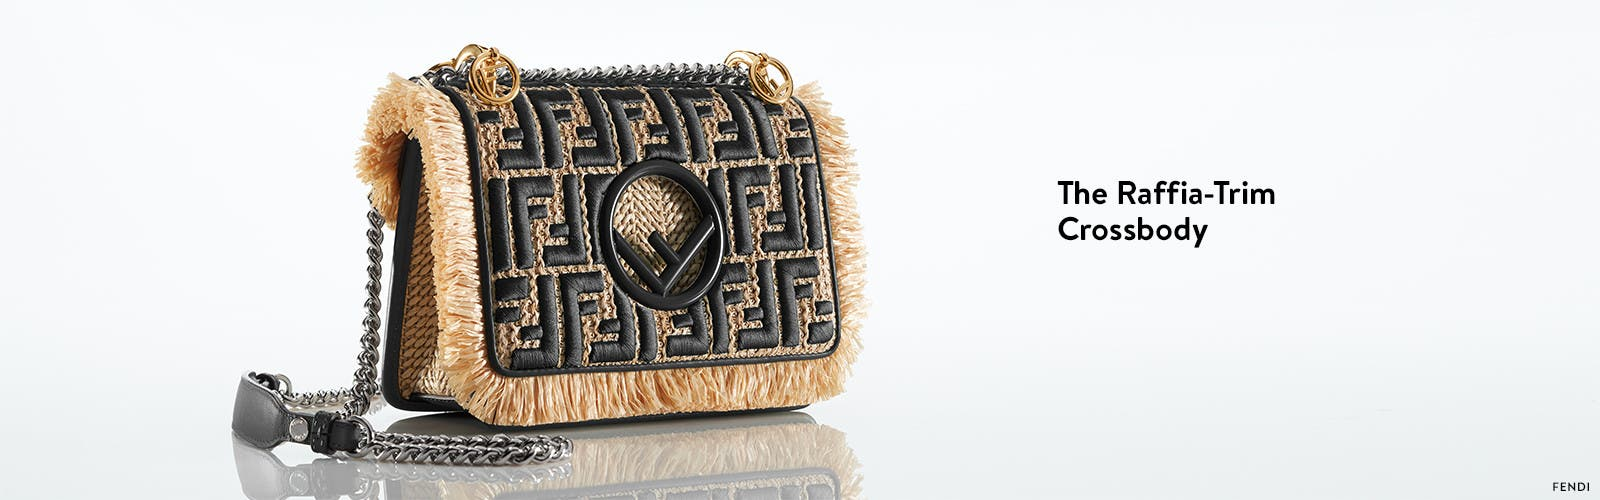 Designer crossbody bag from Fendi.